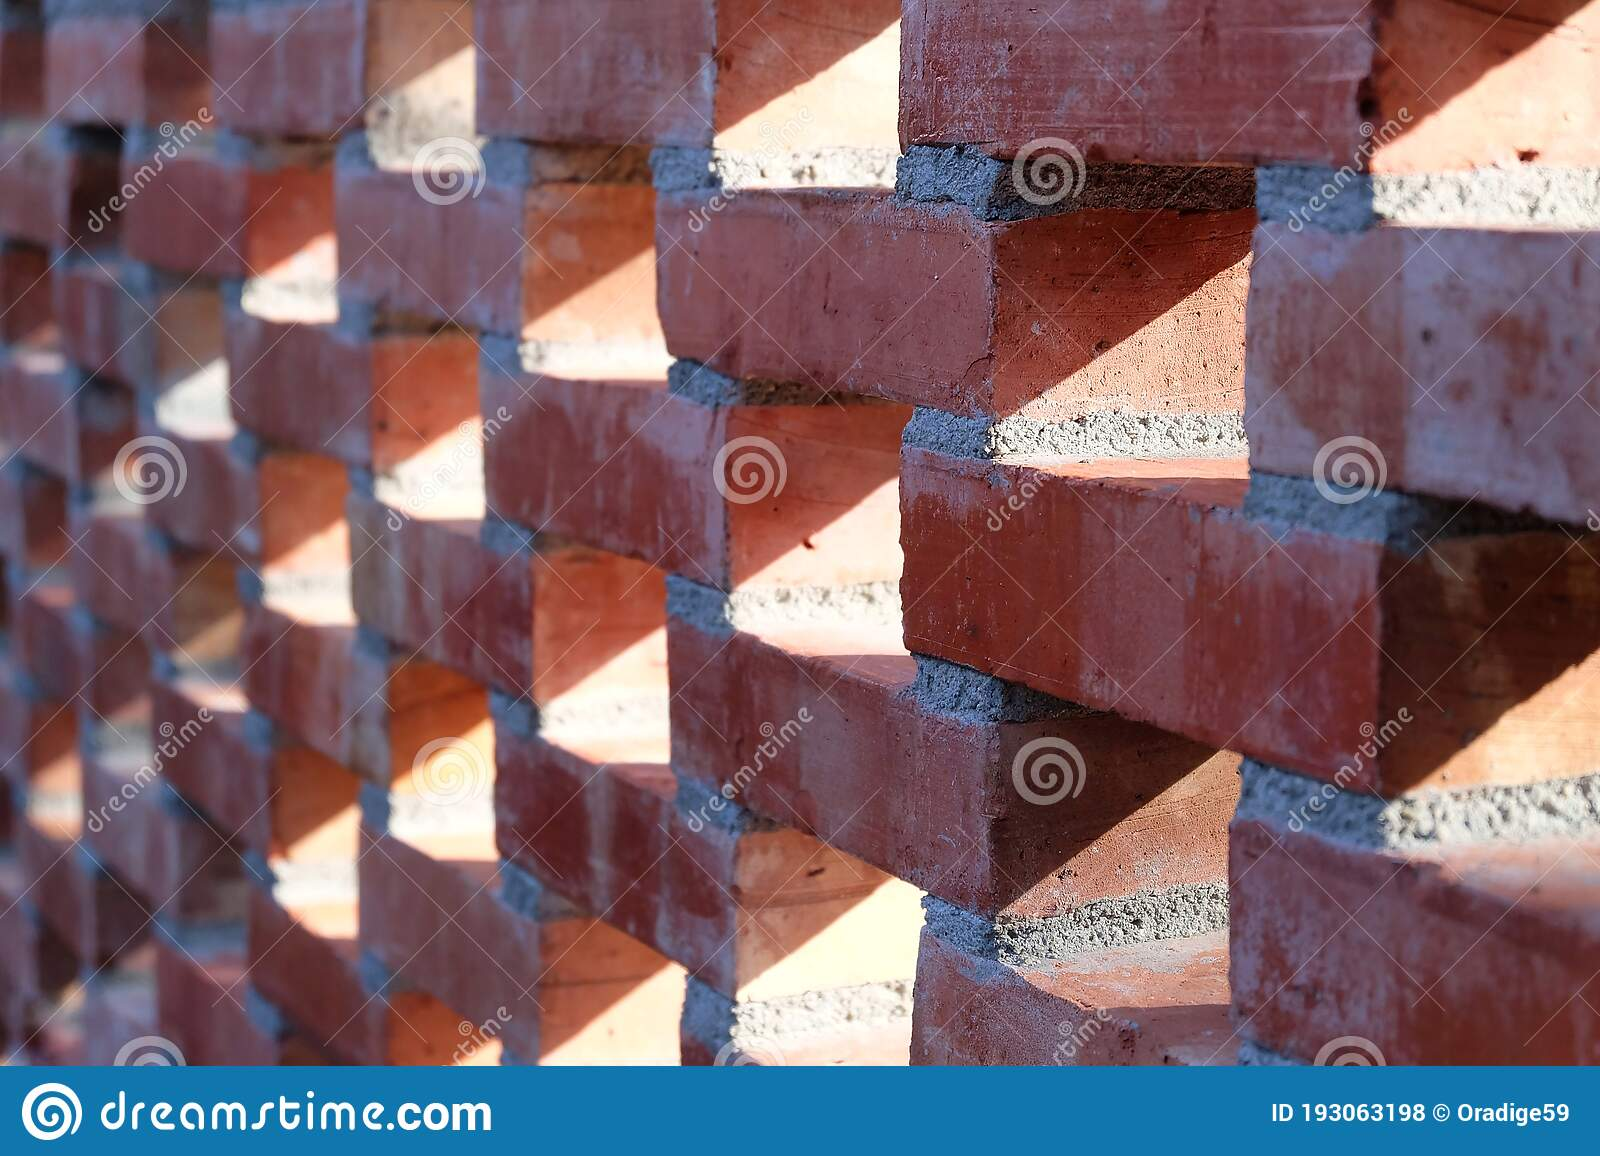 In Selective Focus A Row Of Red Brick Wall With Ventilation Blocks Pattern  Stock Photo - Image of wall, blocks: 193063198